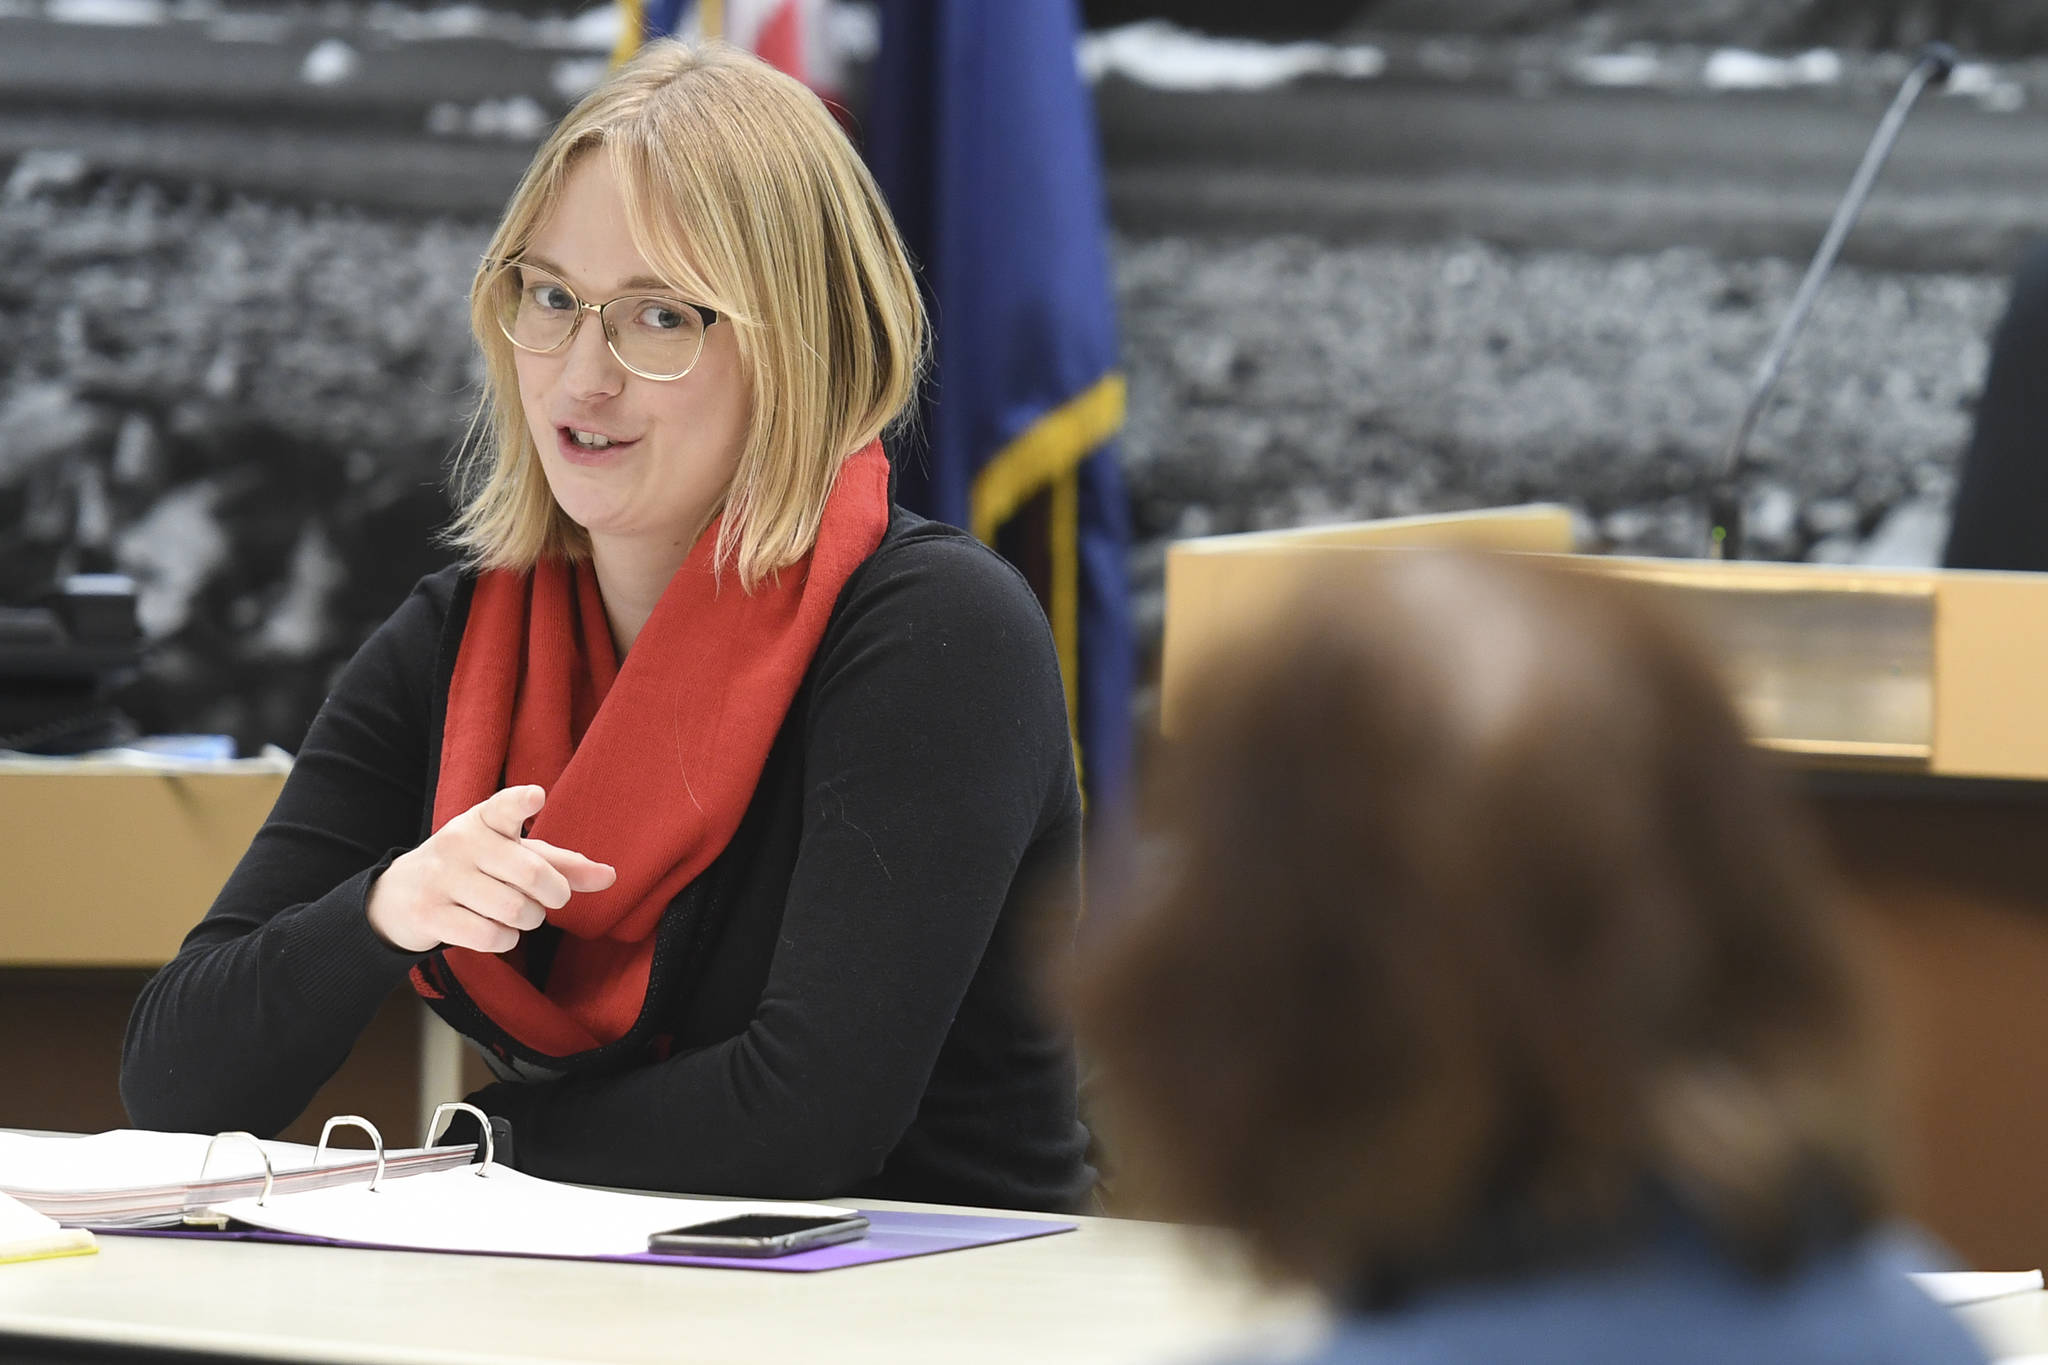 Assemblymember Carole Triem chairs the Visitor Industry Task Force meeting in the Assembly chambers on Tuesday, Jan. 7, 2020. (Michael Penn | Juneau Empire)